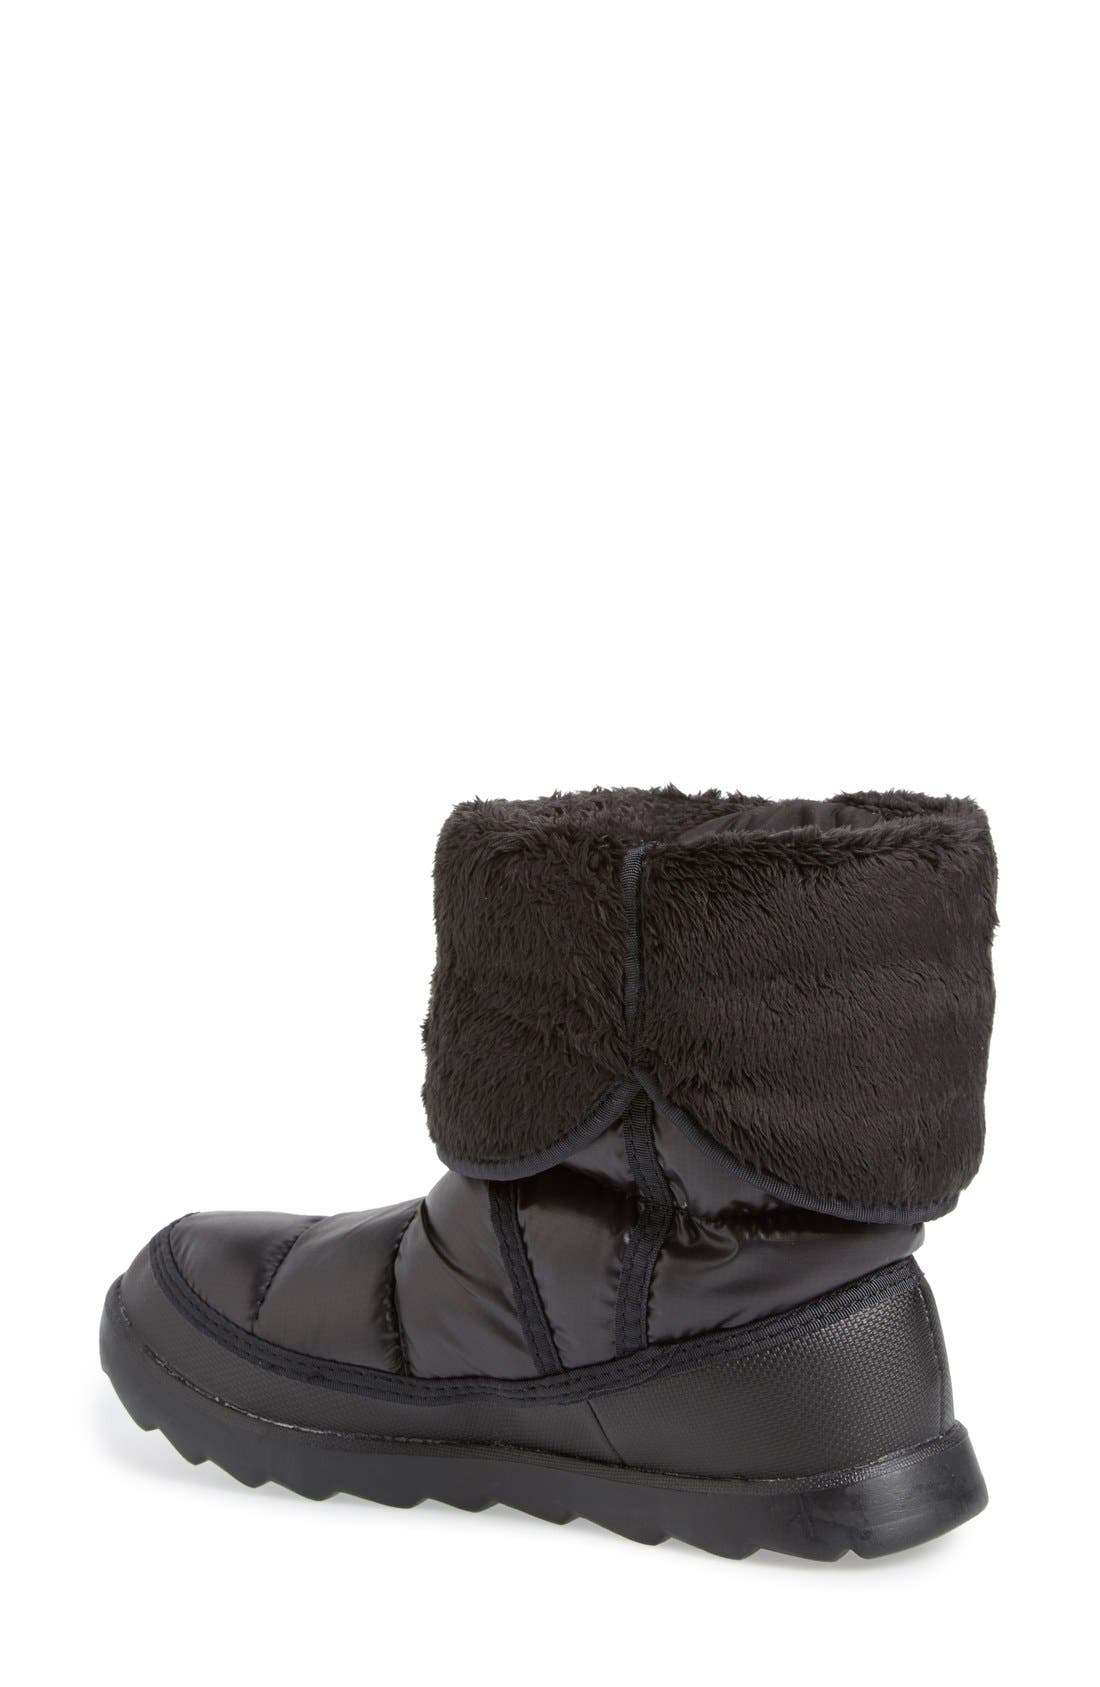 Alternate Image 2  - The North Face 'Amore' Boot (Women)